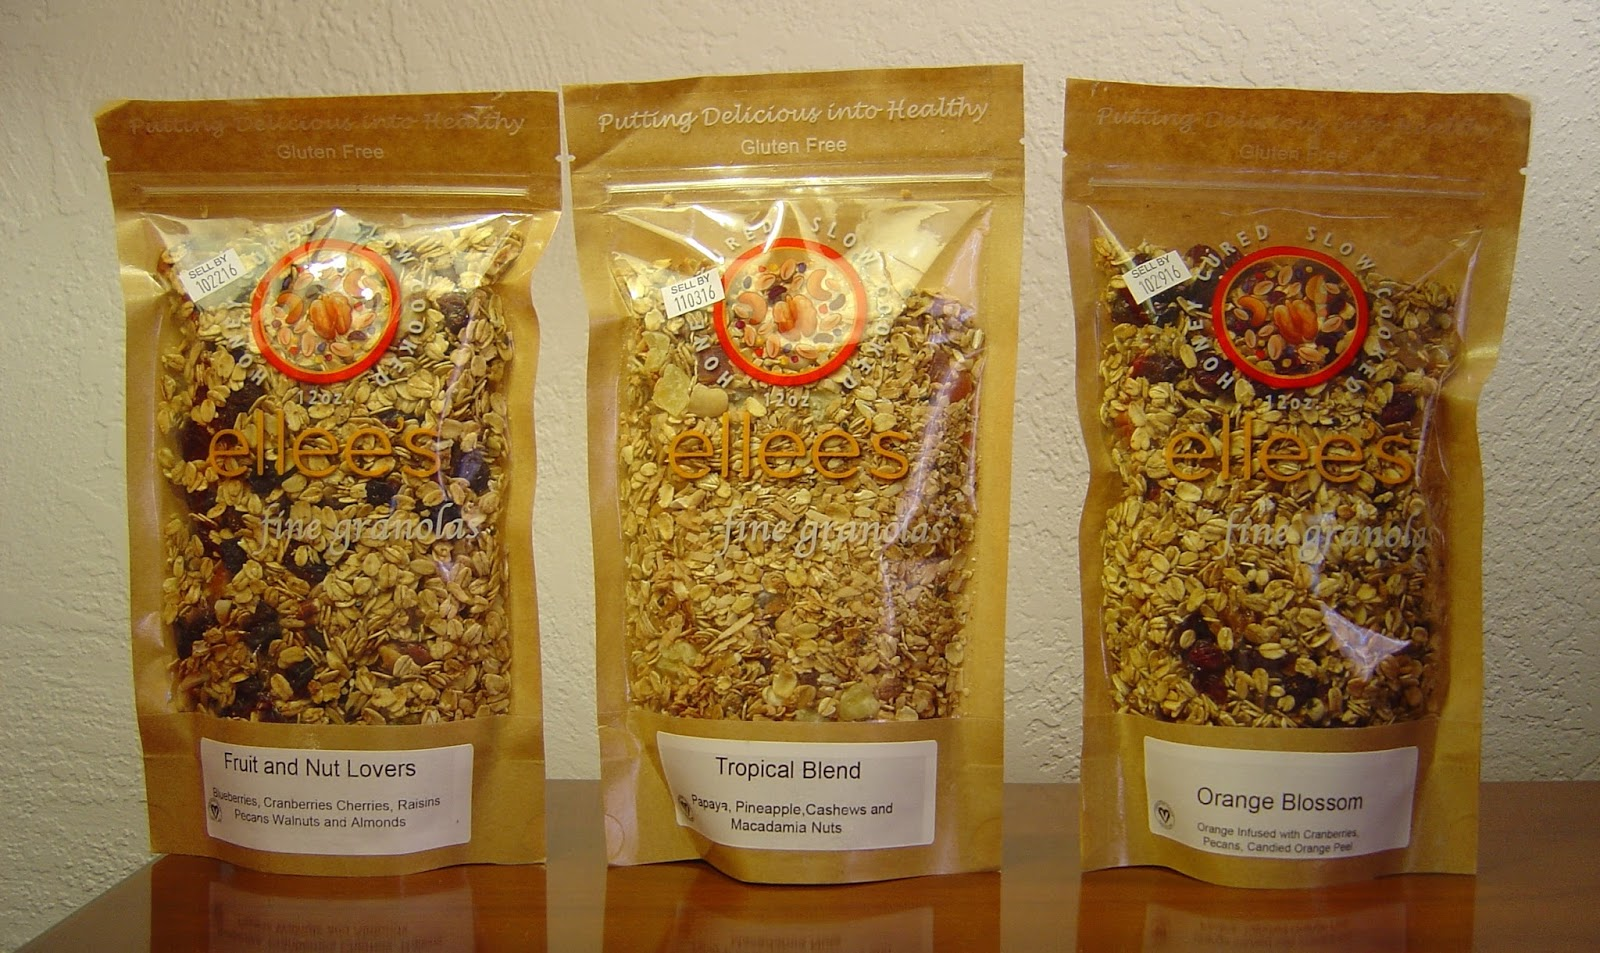 Ellee's Gourmet Granolas (Fruit and Nut Lovers, Tropical Blend and Orange Blossom